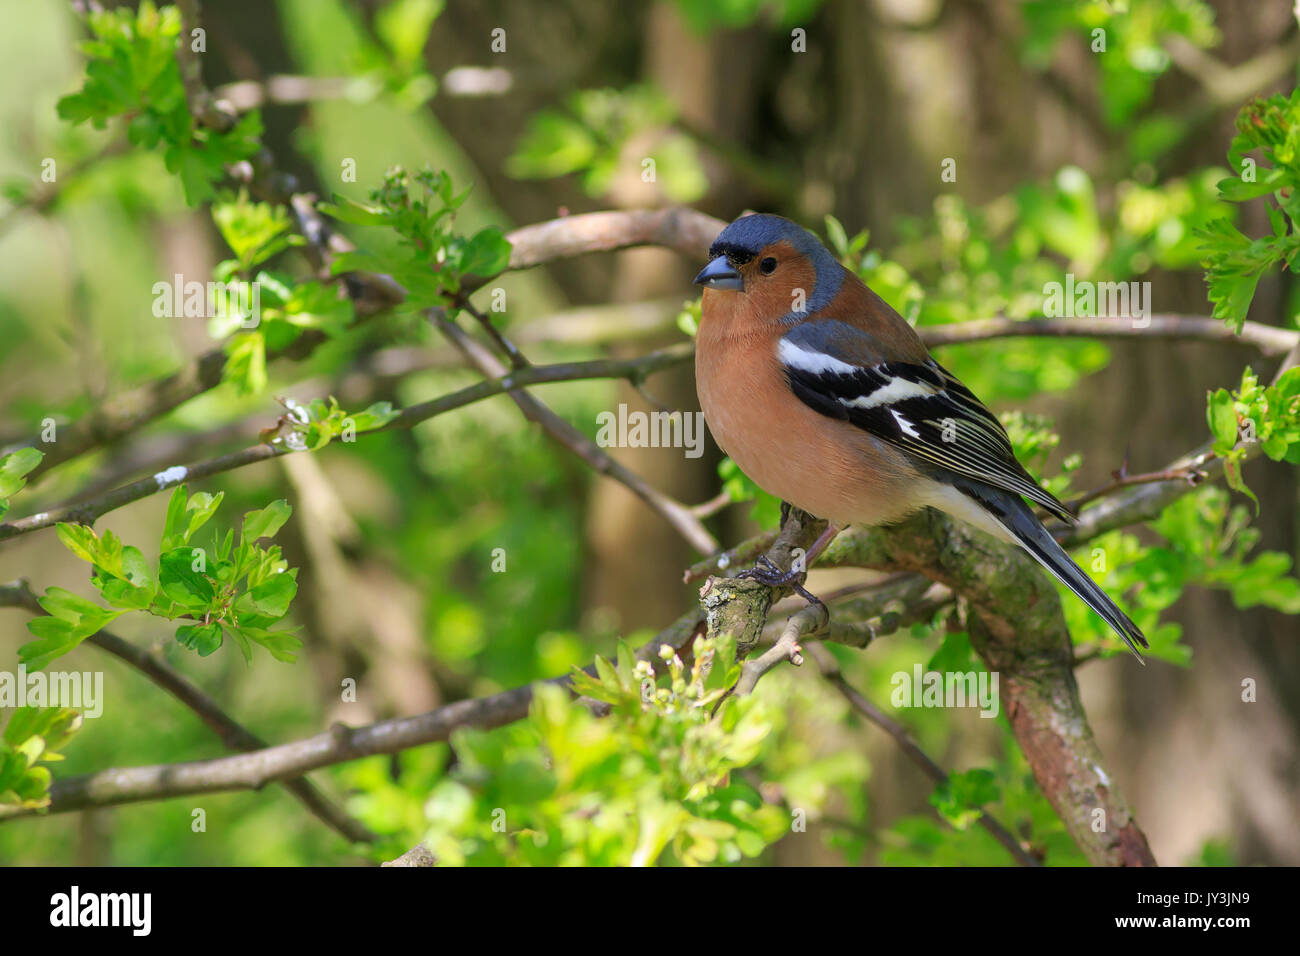 Chaffinch perched in a tree close-up - Stock Image